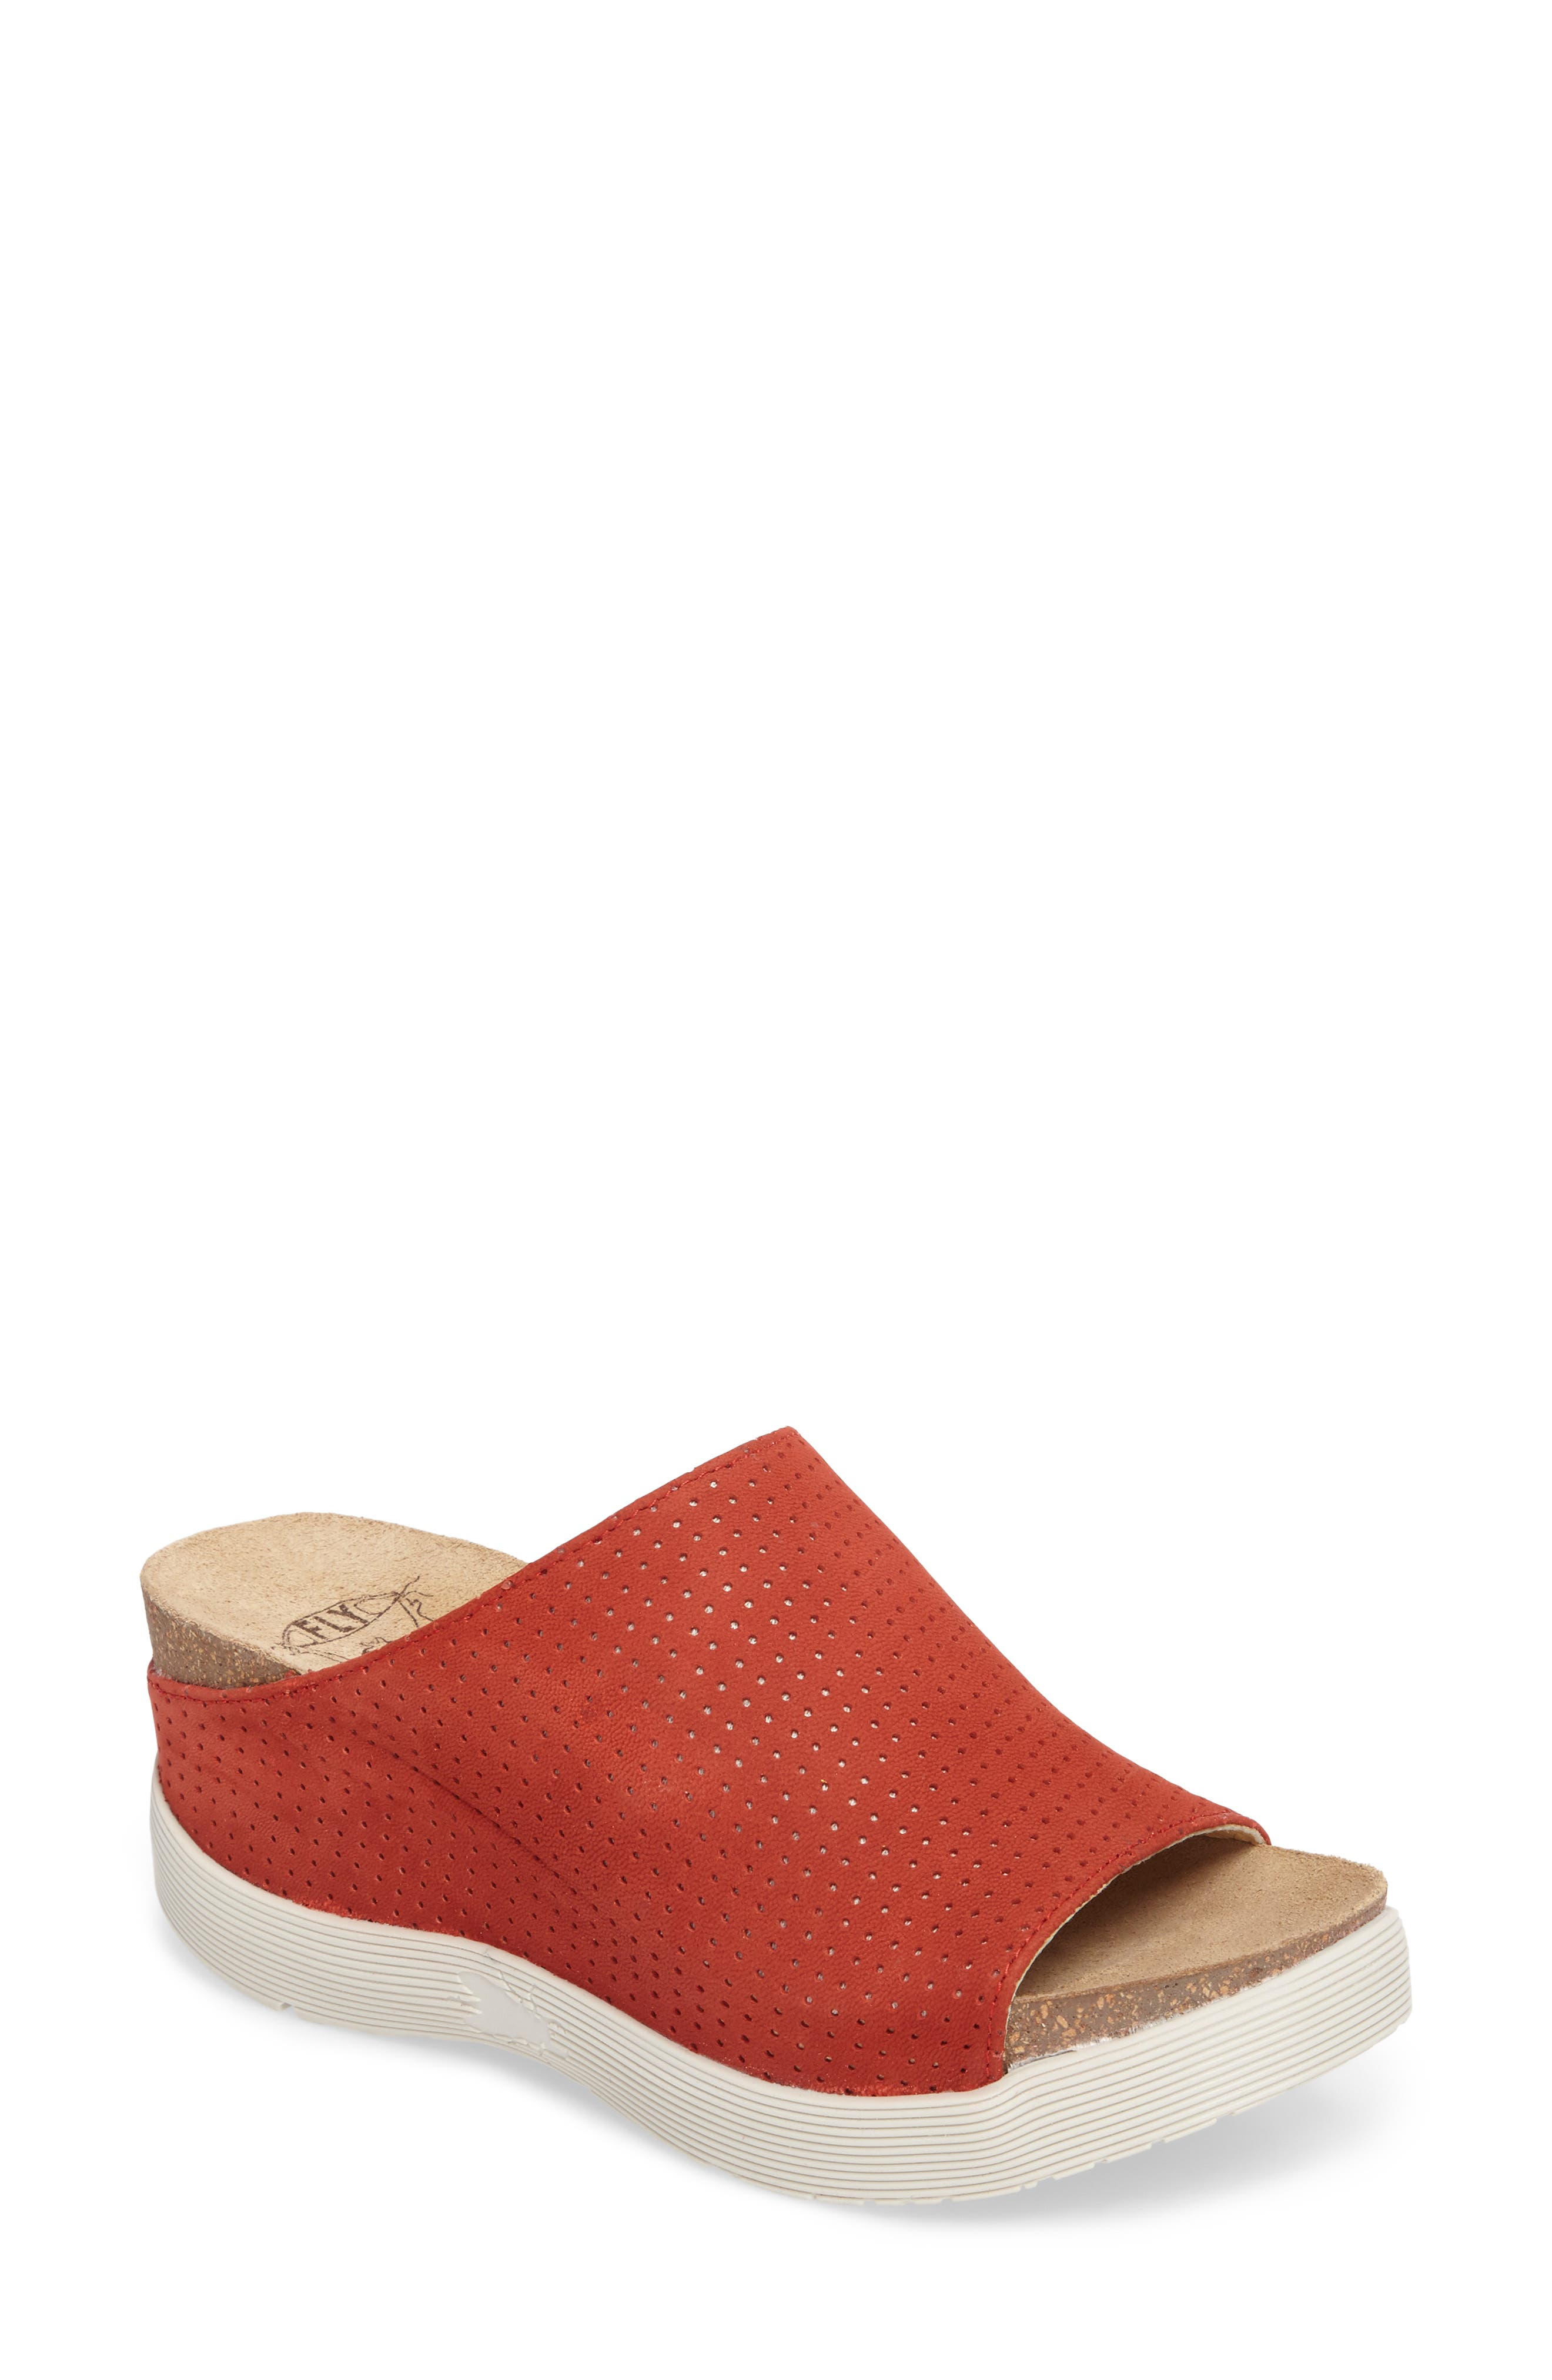 Fly London Whin Platform Sandal - Red